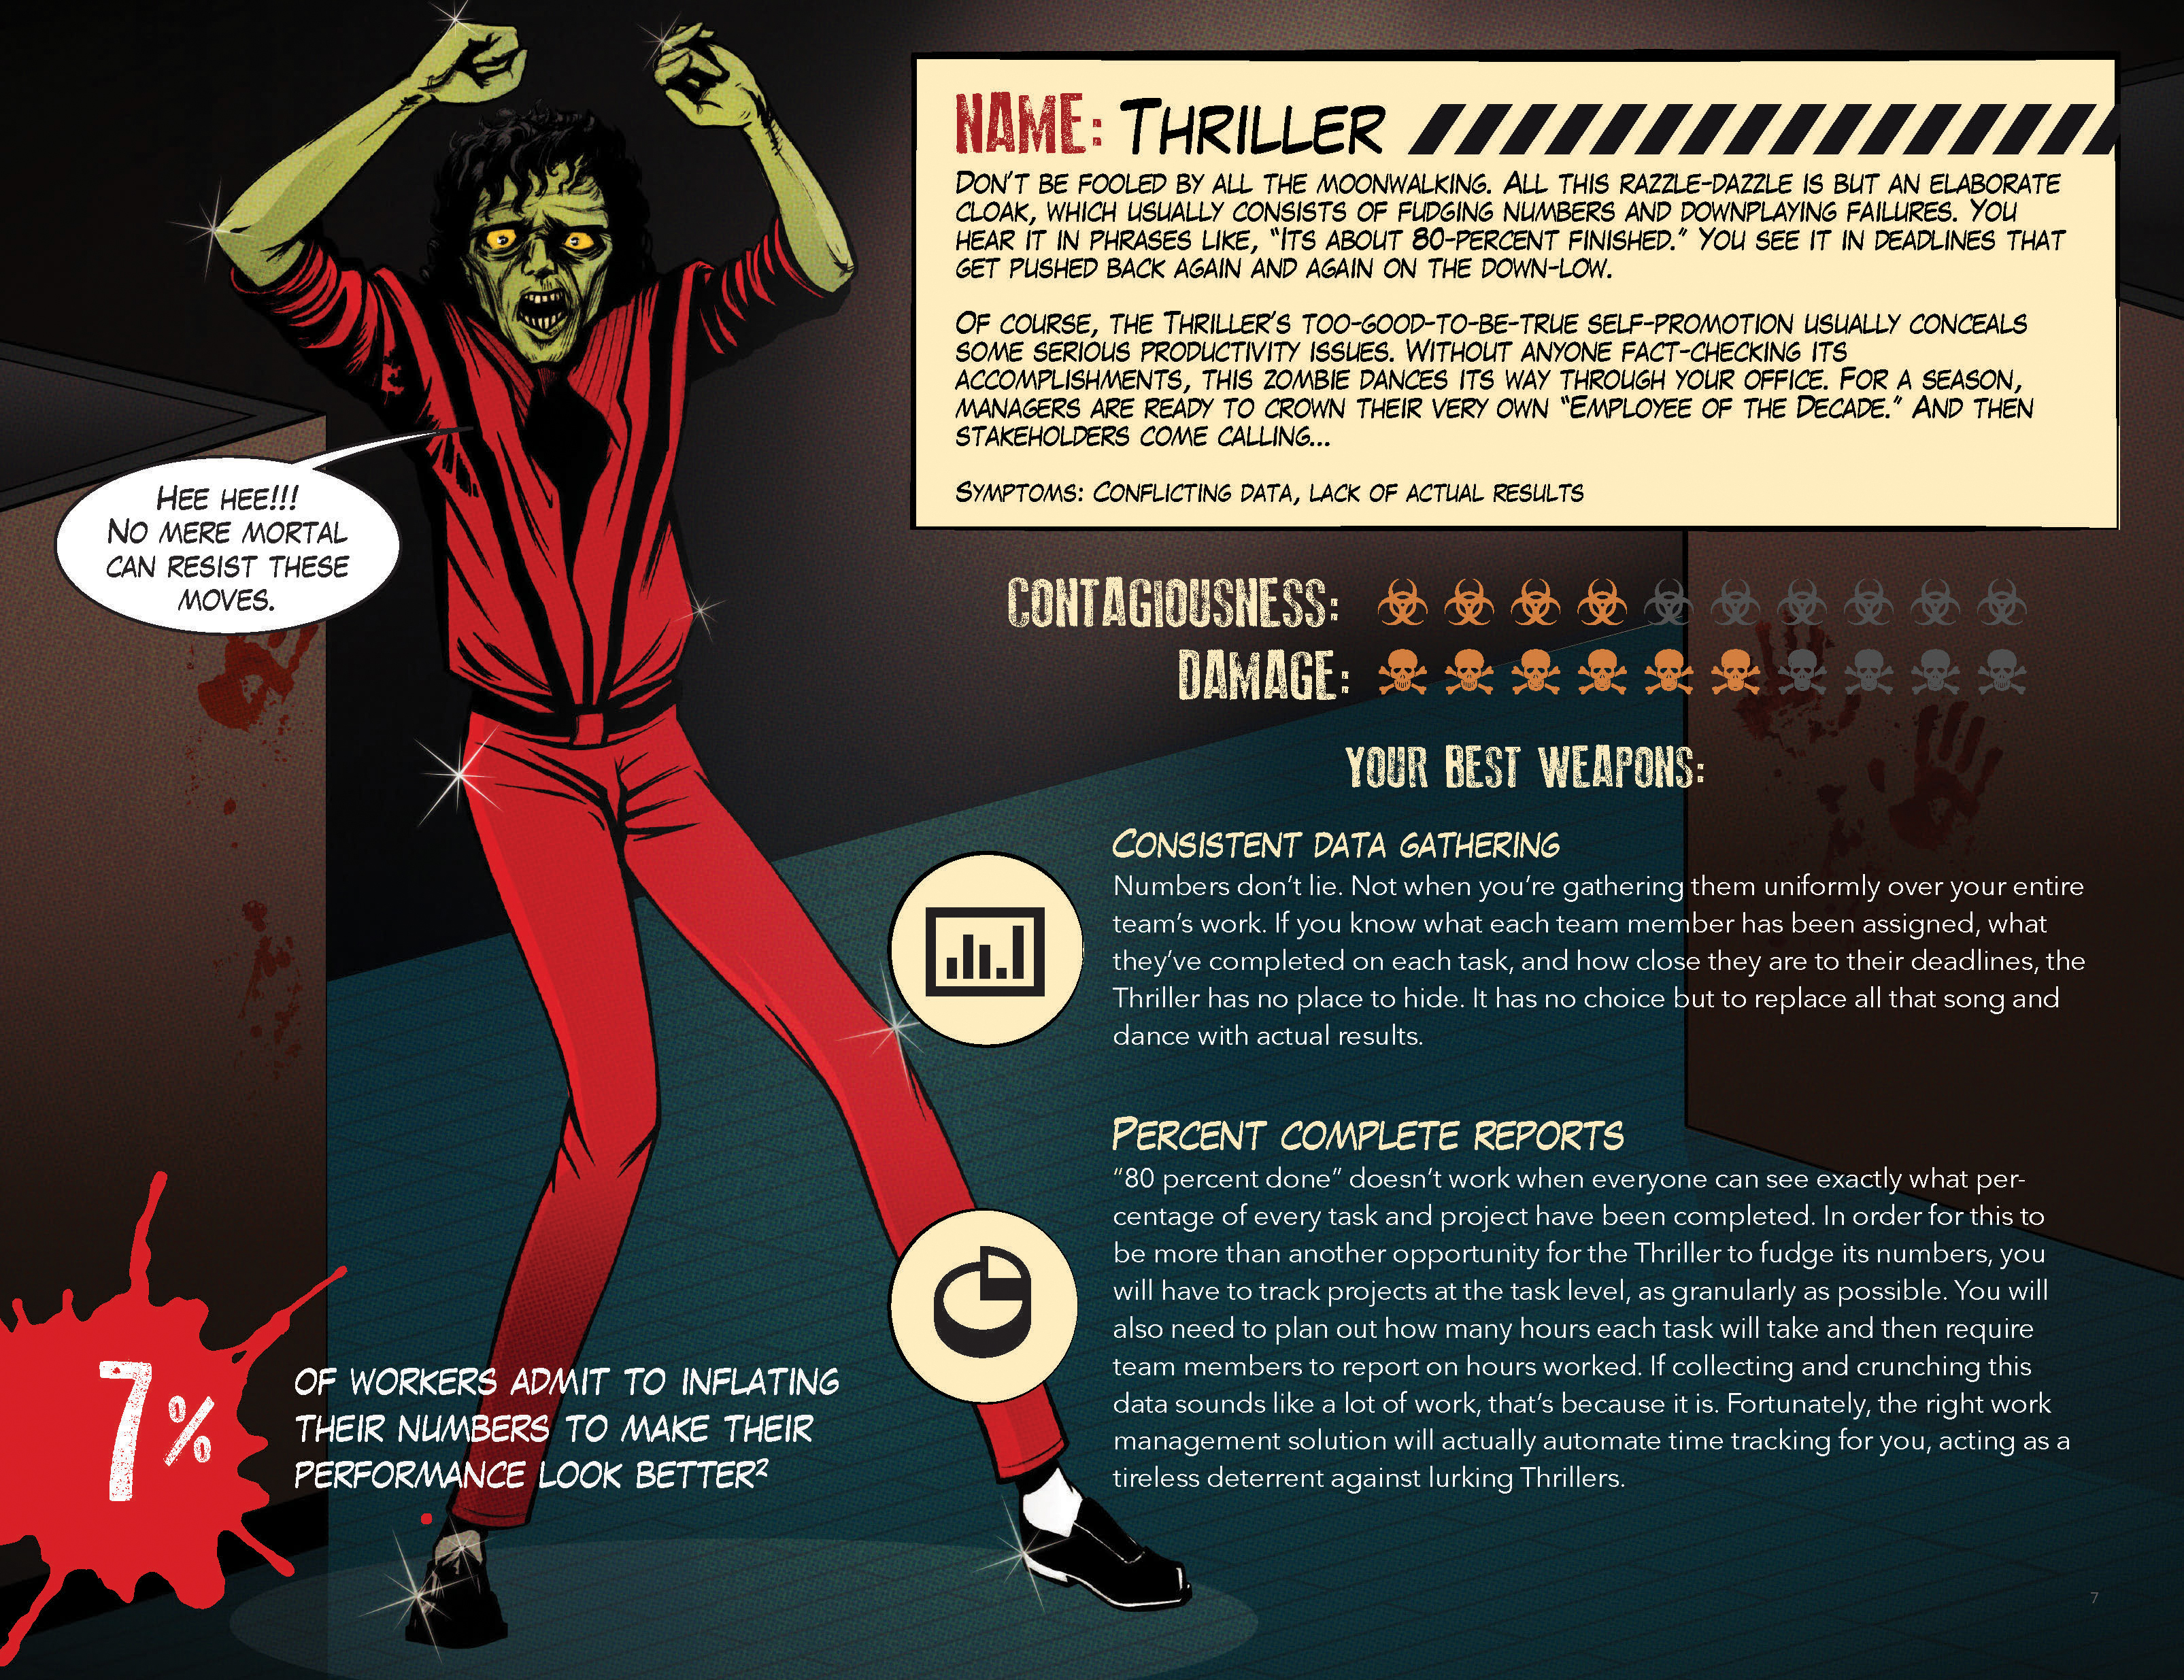 ryan braman illustration and design for an ebook describing various types of workplace zombies